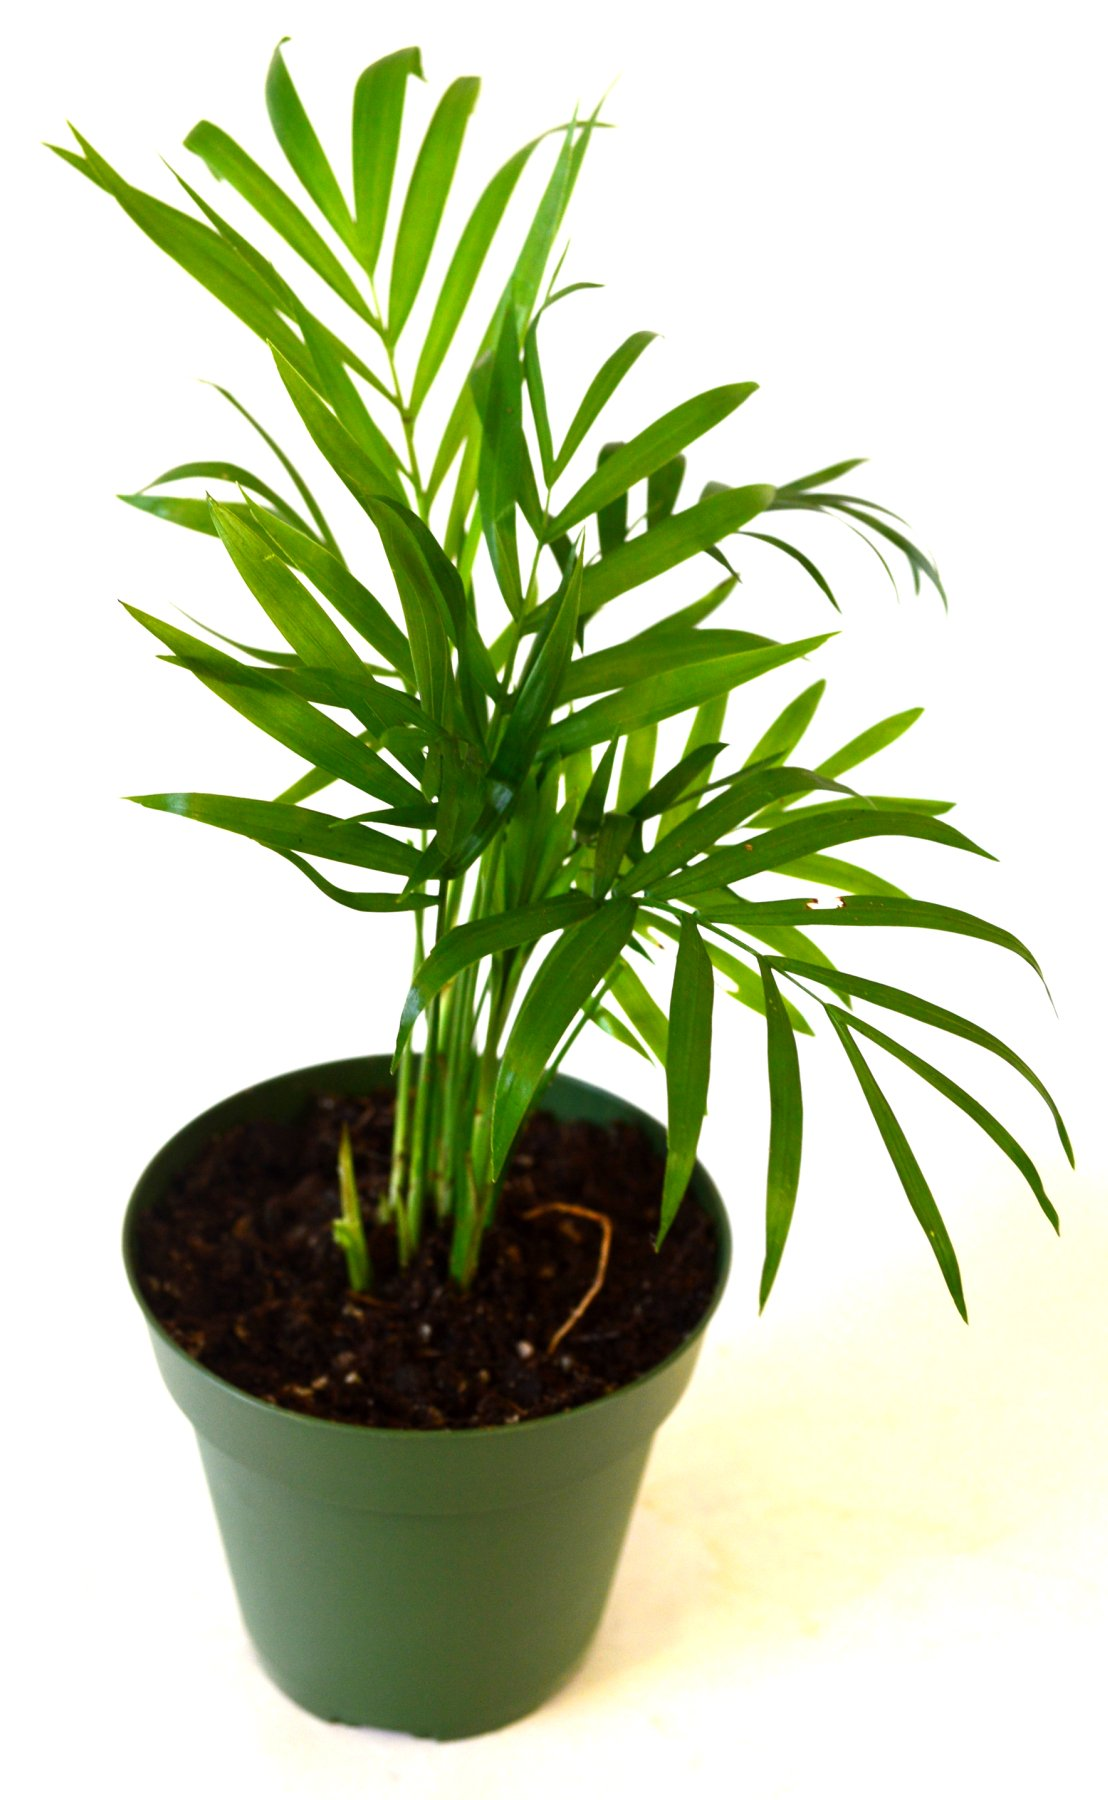 9GreenBox - Victorian Parlor Palm - Chamaedorea - 4'' Pot